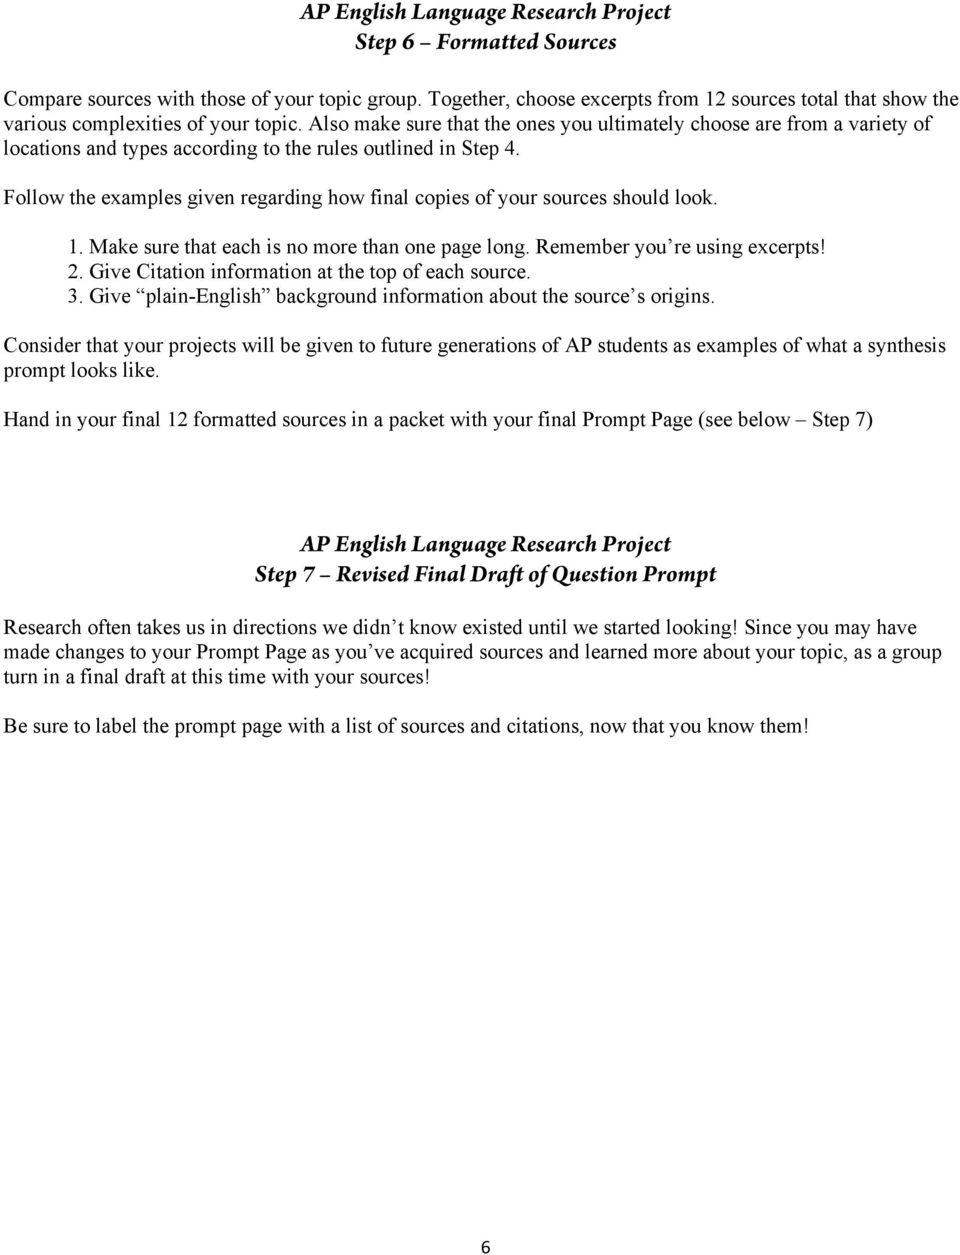 Prompt Essay Examples Opinion Writing Prompt Cards  Sample Act  Ap Language Synthesis Essay Prompt Bihap Com Carpinteria Rural Friedrich Cu  Boulder Application Essay Quot Anti